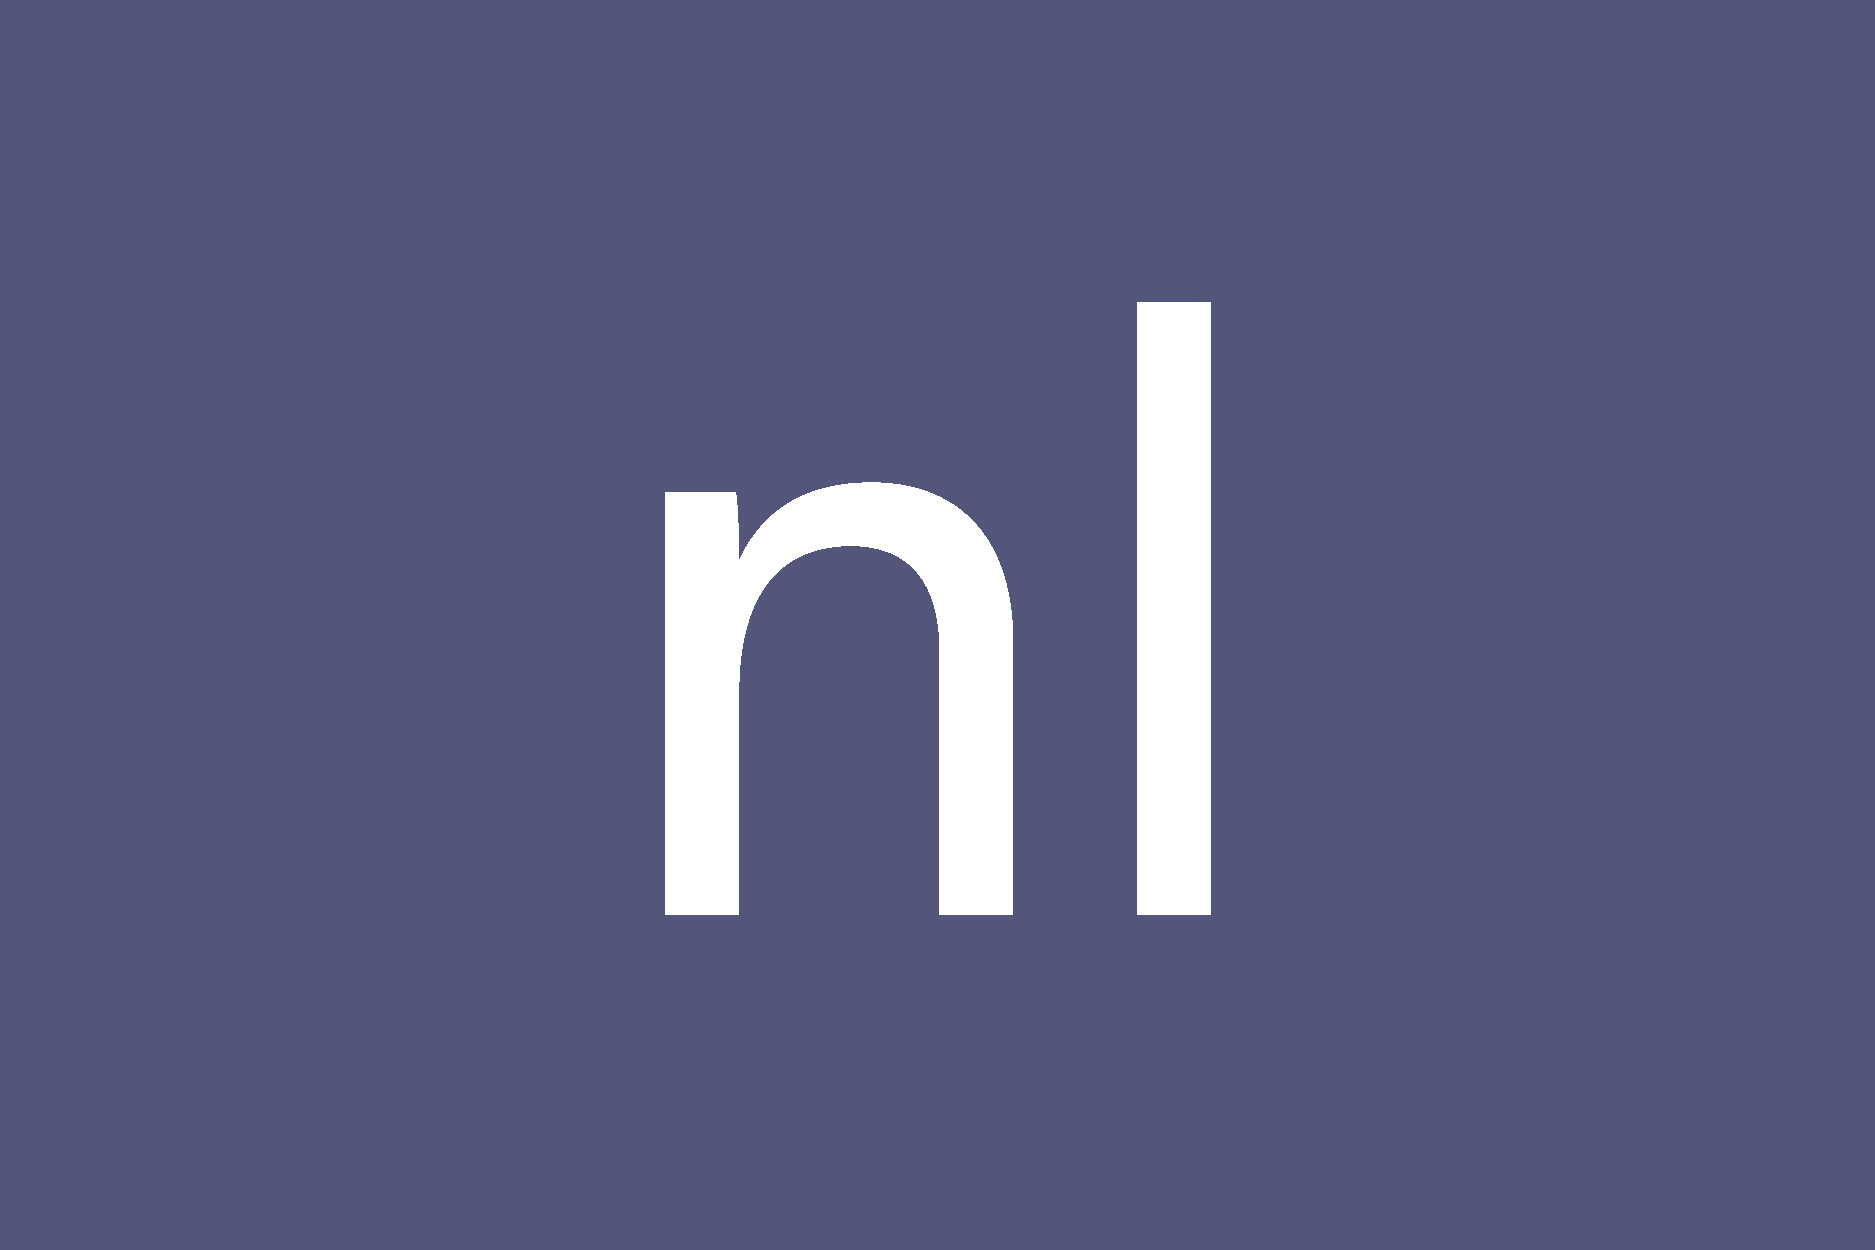 ISO 639-1 language code for Dutch: NL